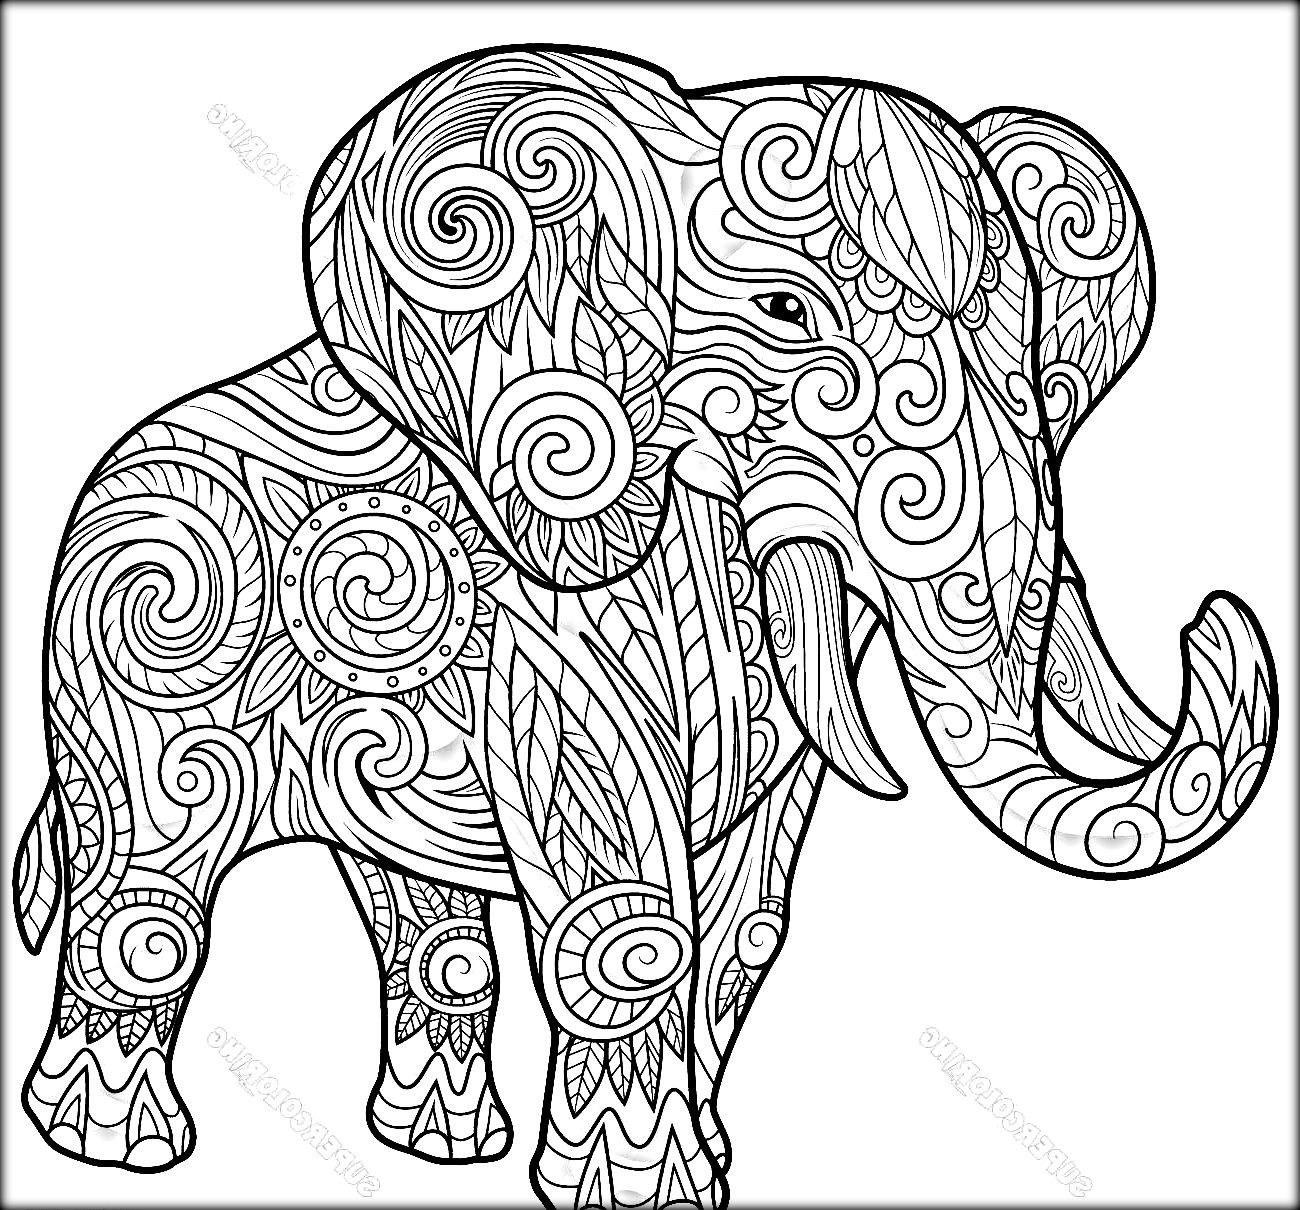 Indian Elephant Coloring Pages At Getcolorings